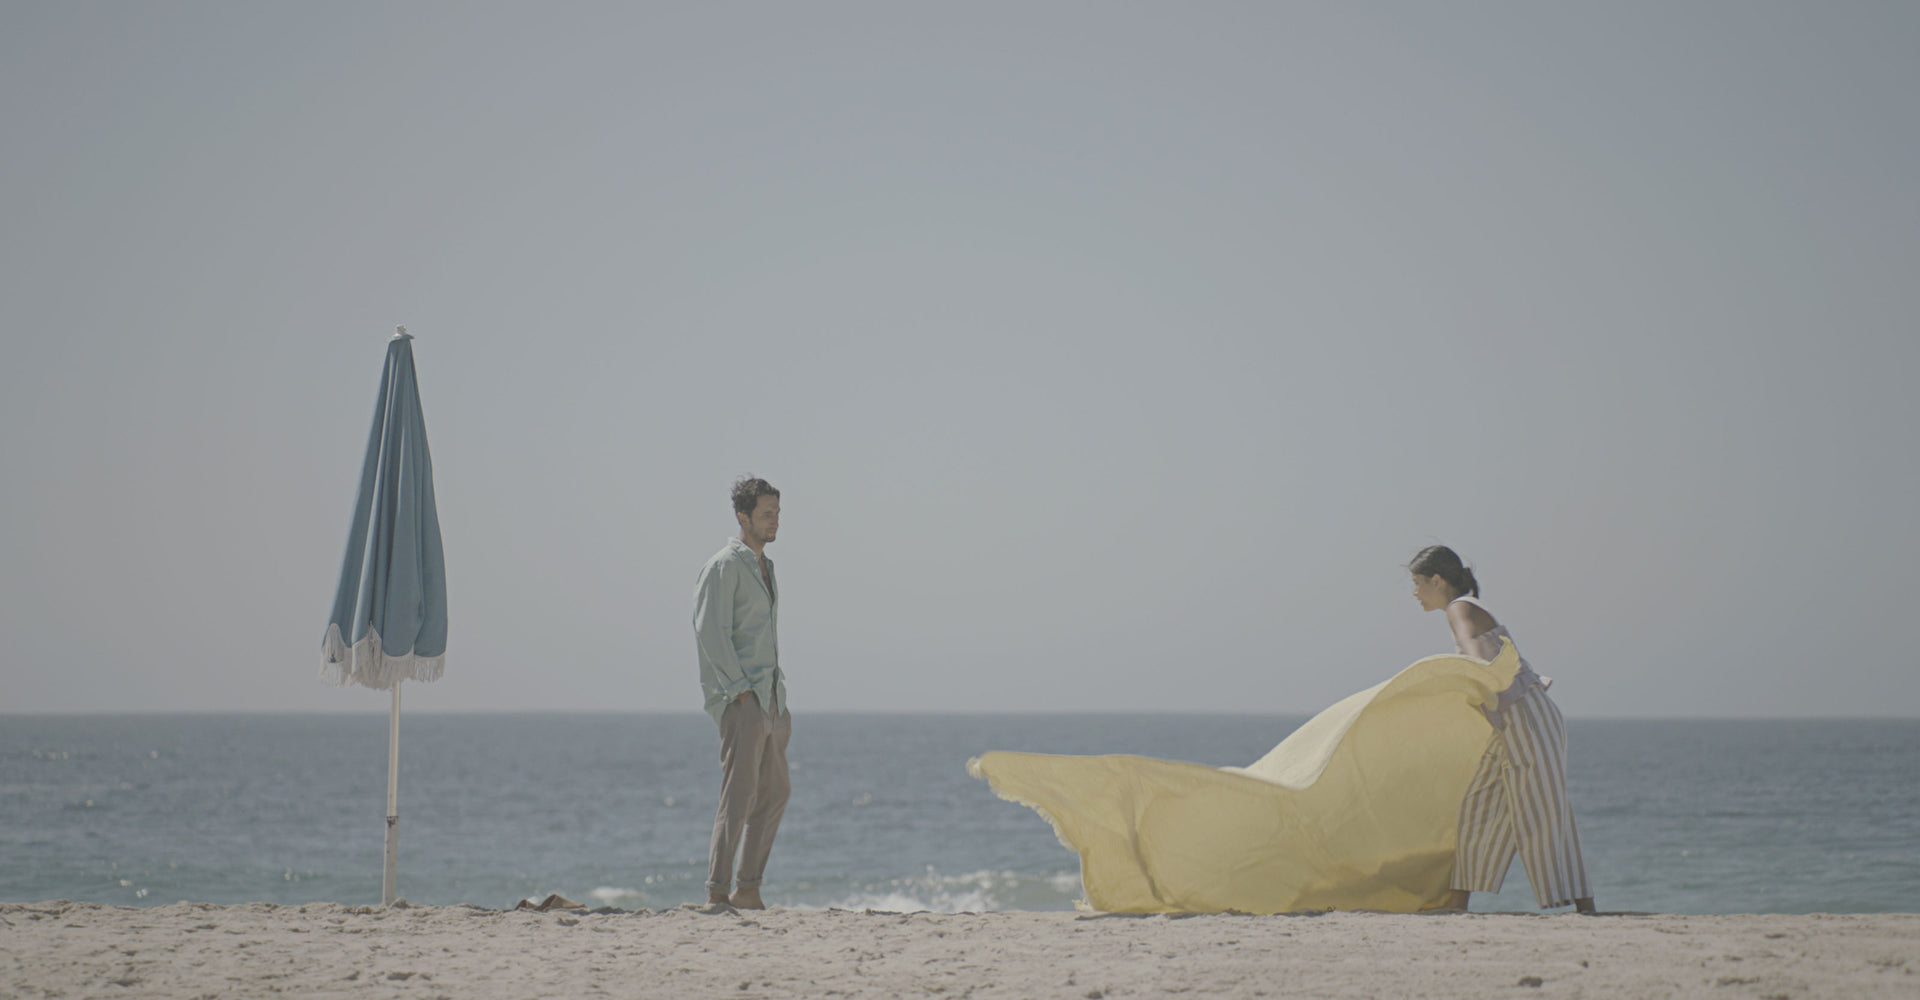 A man and woman setting a blanket on the beach.